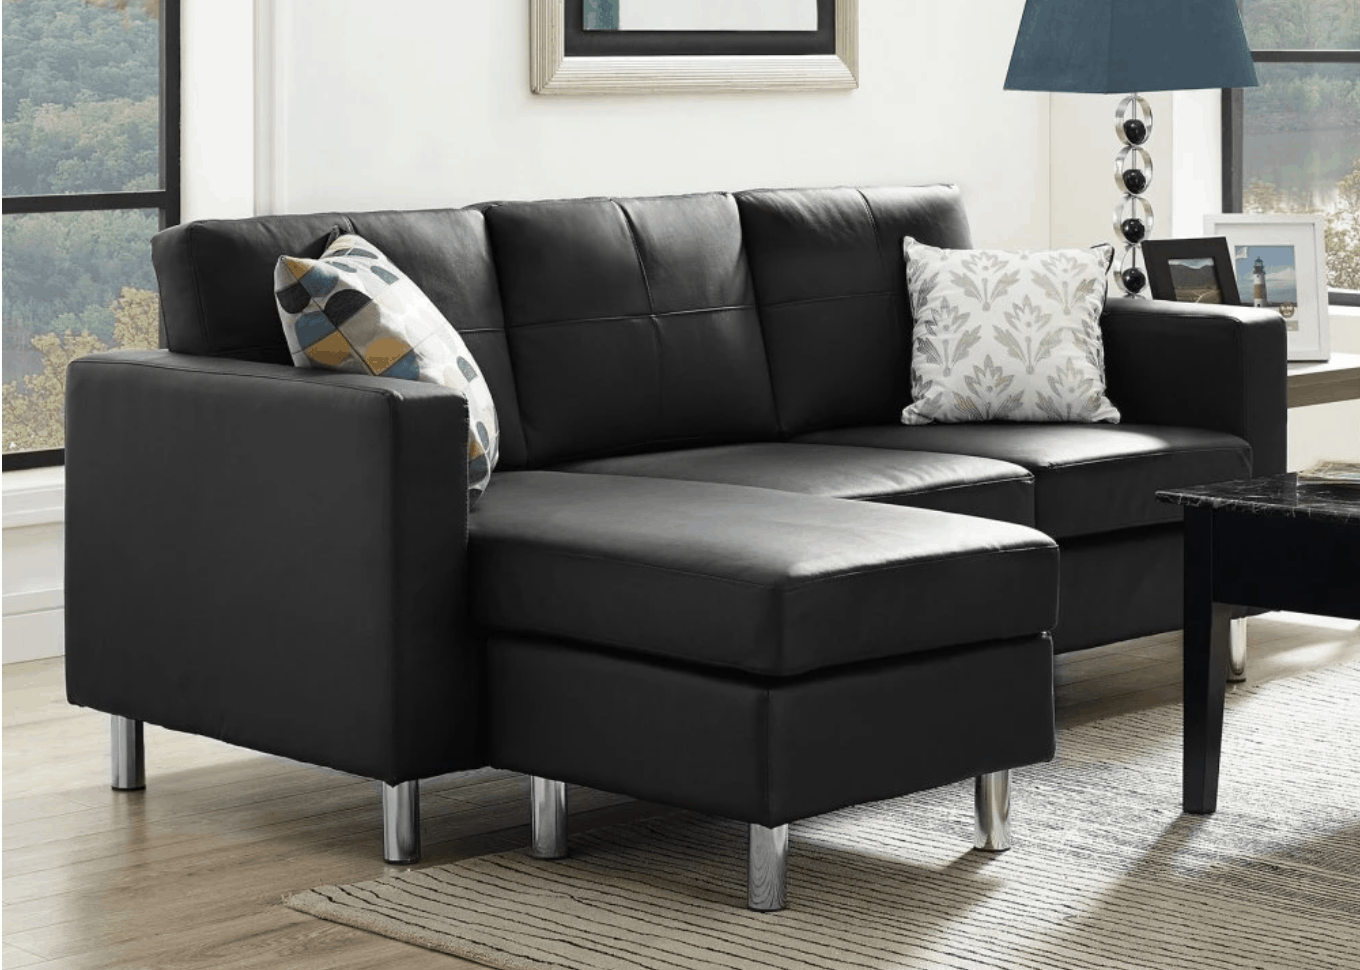 75 modern sectional sofas for small spaces 2018 - Small space sectional couches paint ...